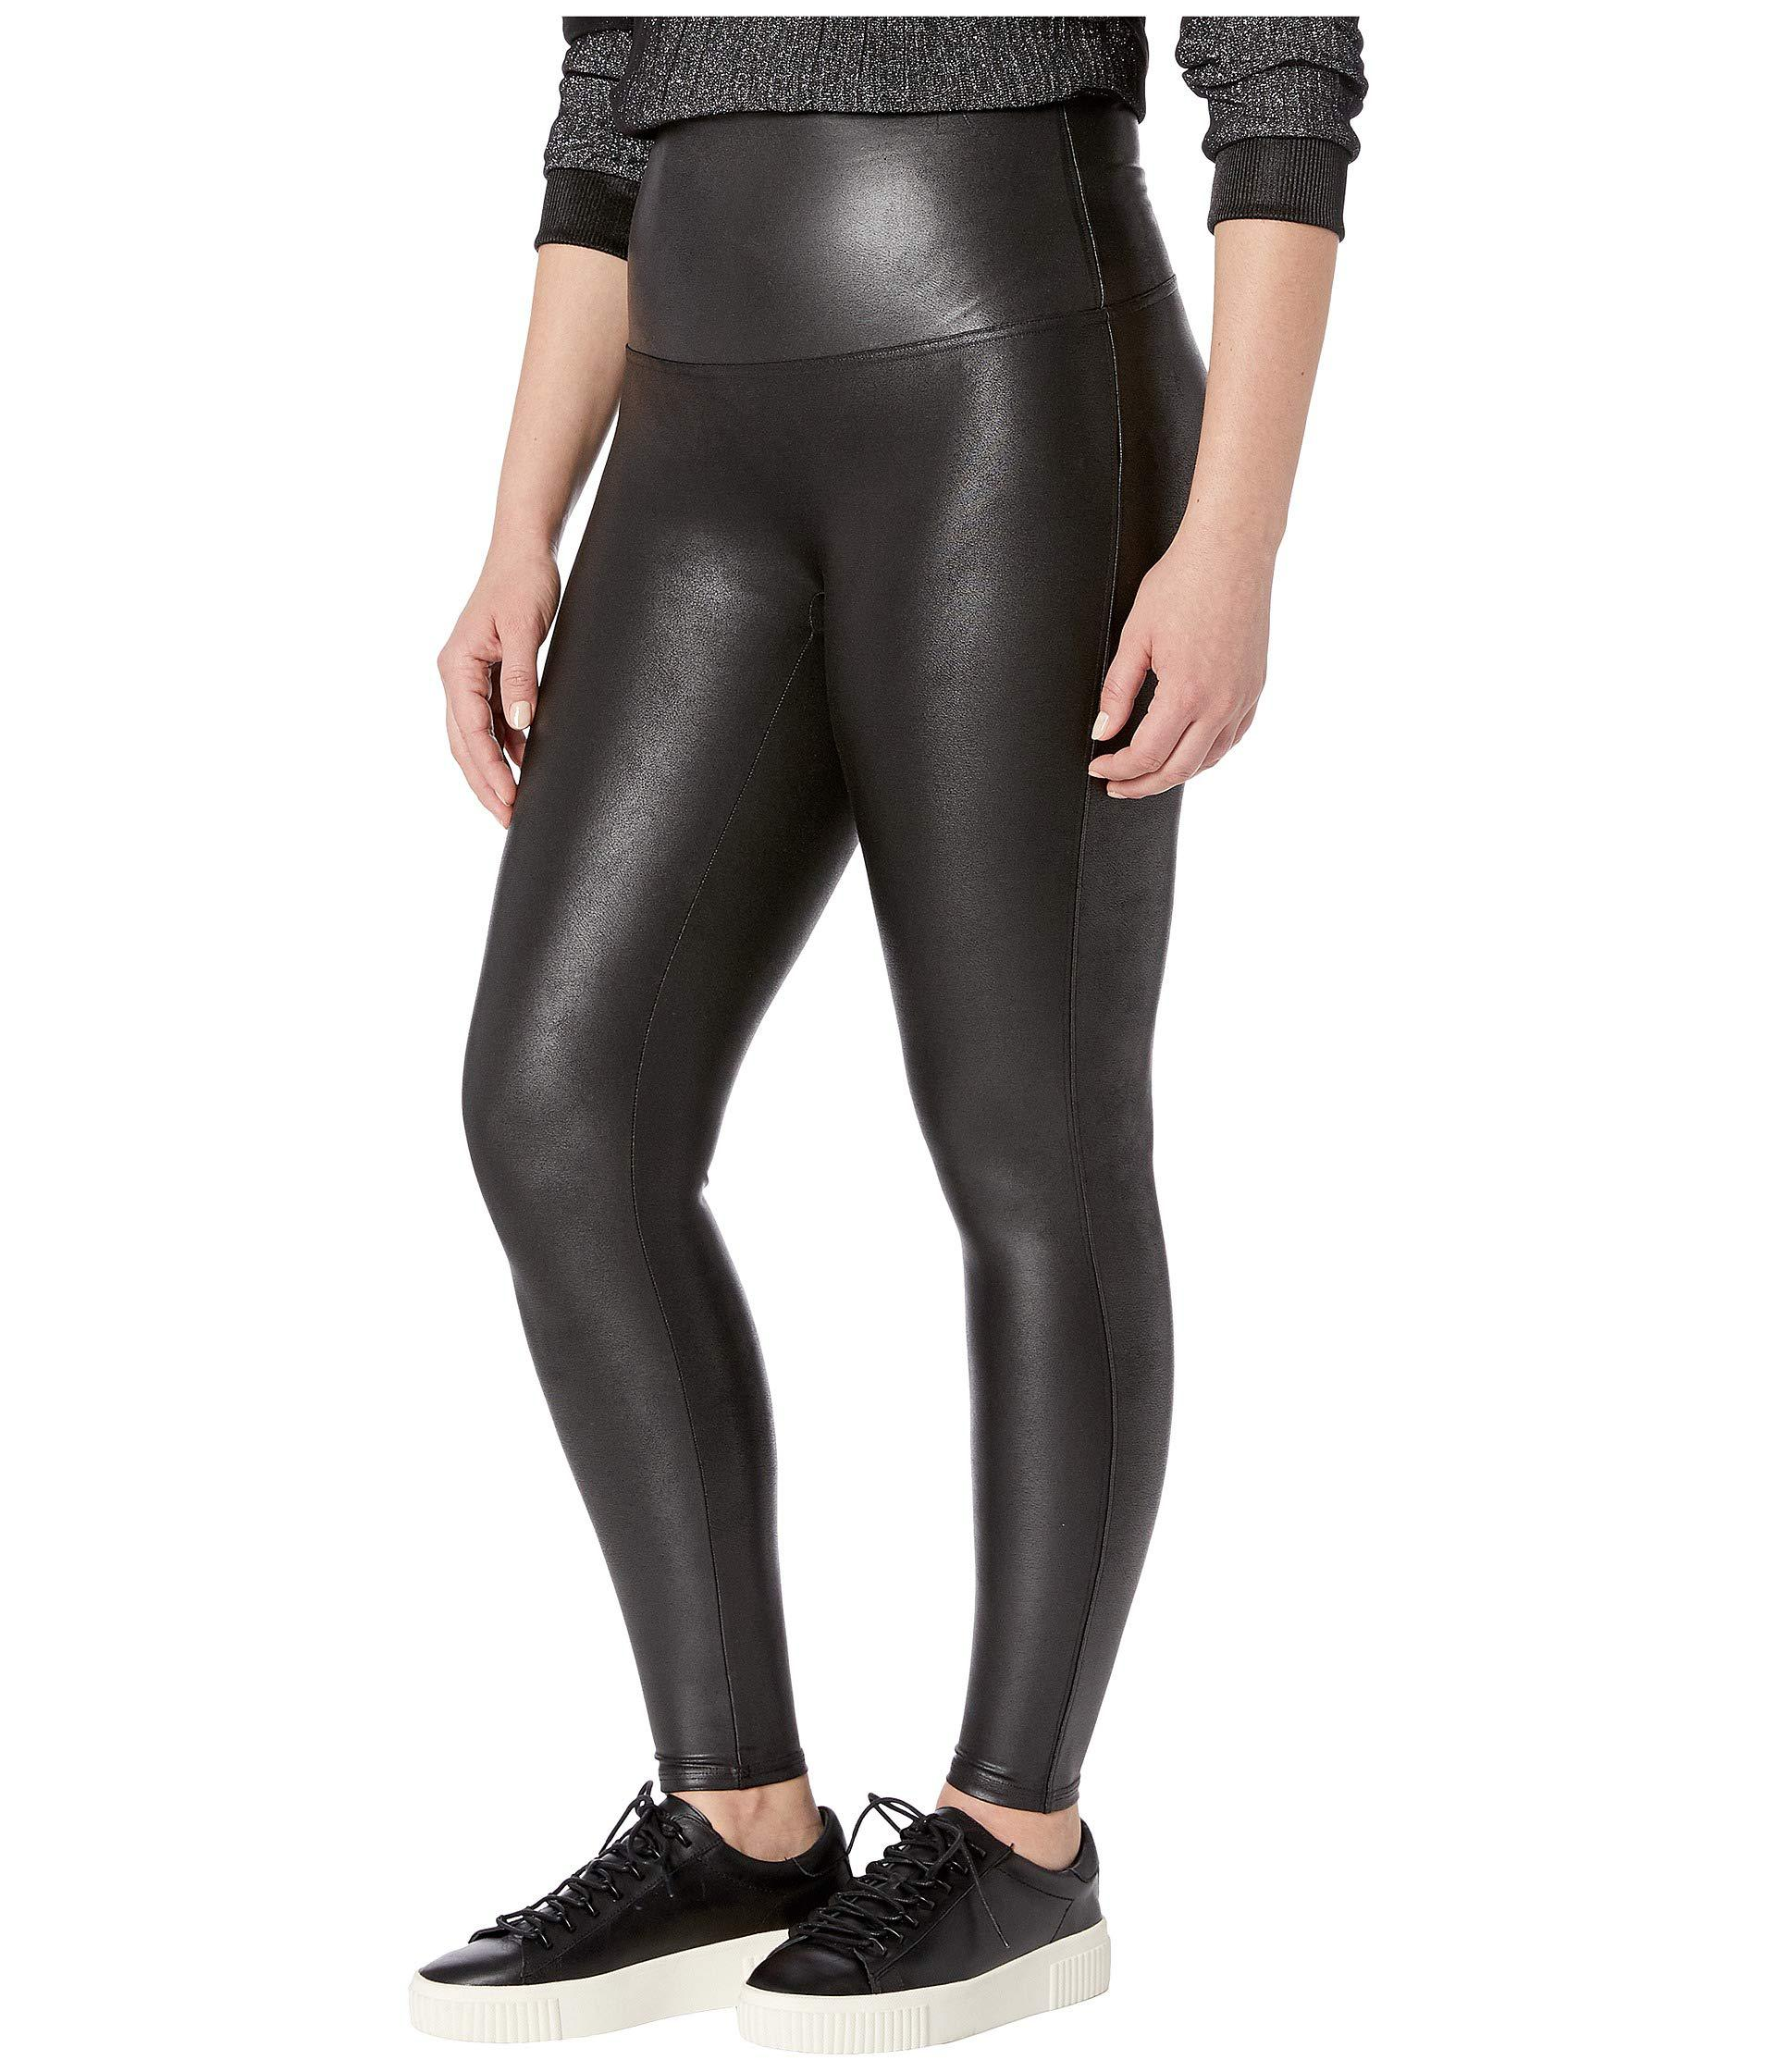 b990af7b68f Spanx Plus Size Faux Leather Petite Leggings (black) Women s Casual Pants  in Black - Lyst